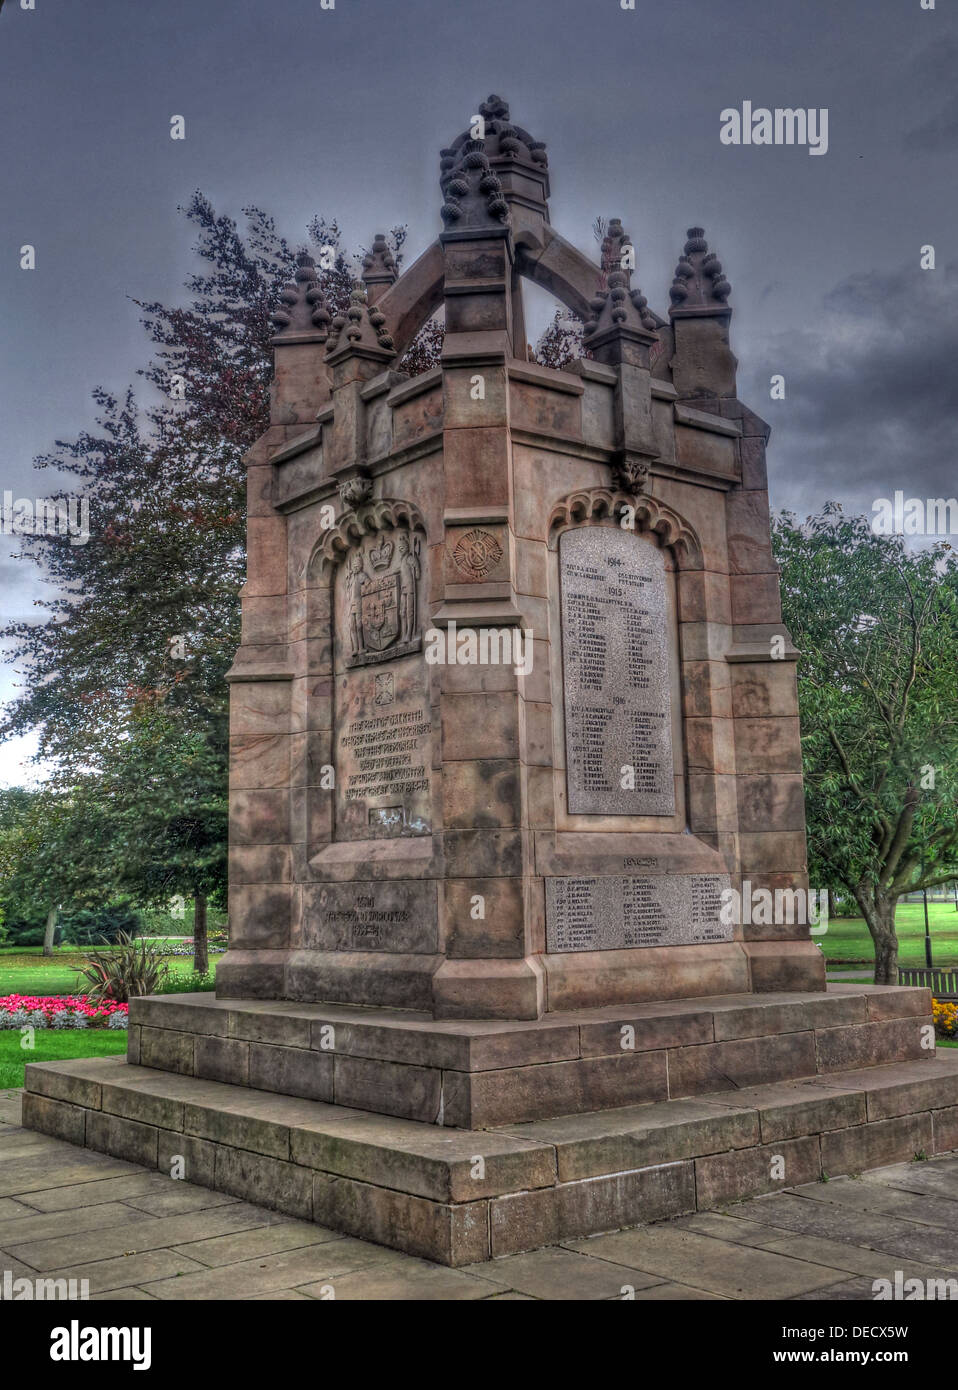 Dalkeith Park War Memorial, Kings Park, Midlothian, Edinburgh, Scotland, UK - Stock Image